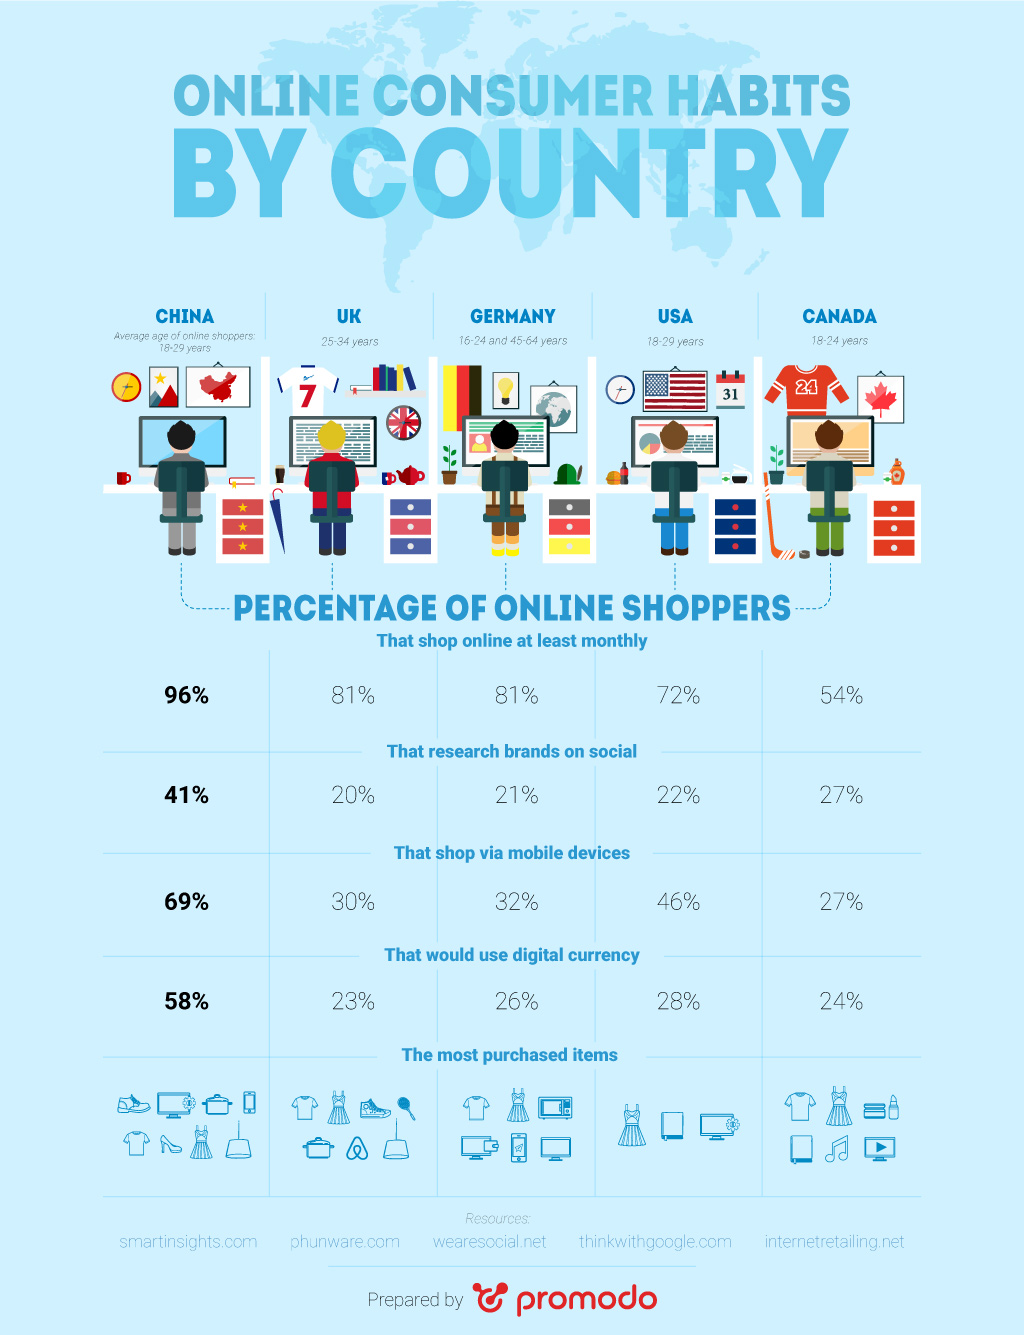 Online Consumer Habits by Country